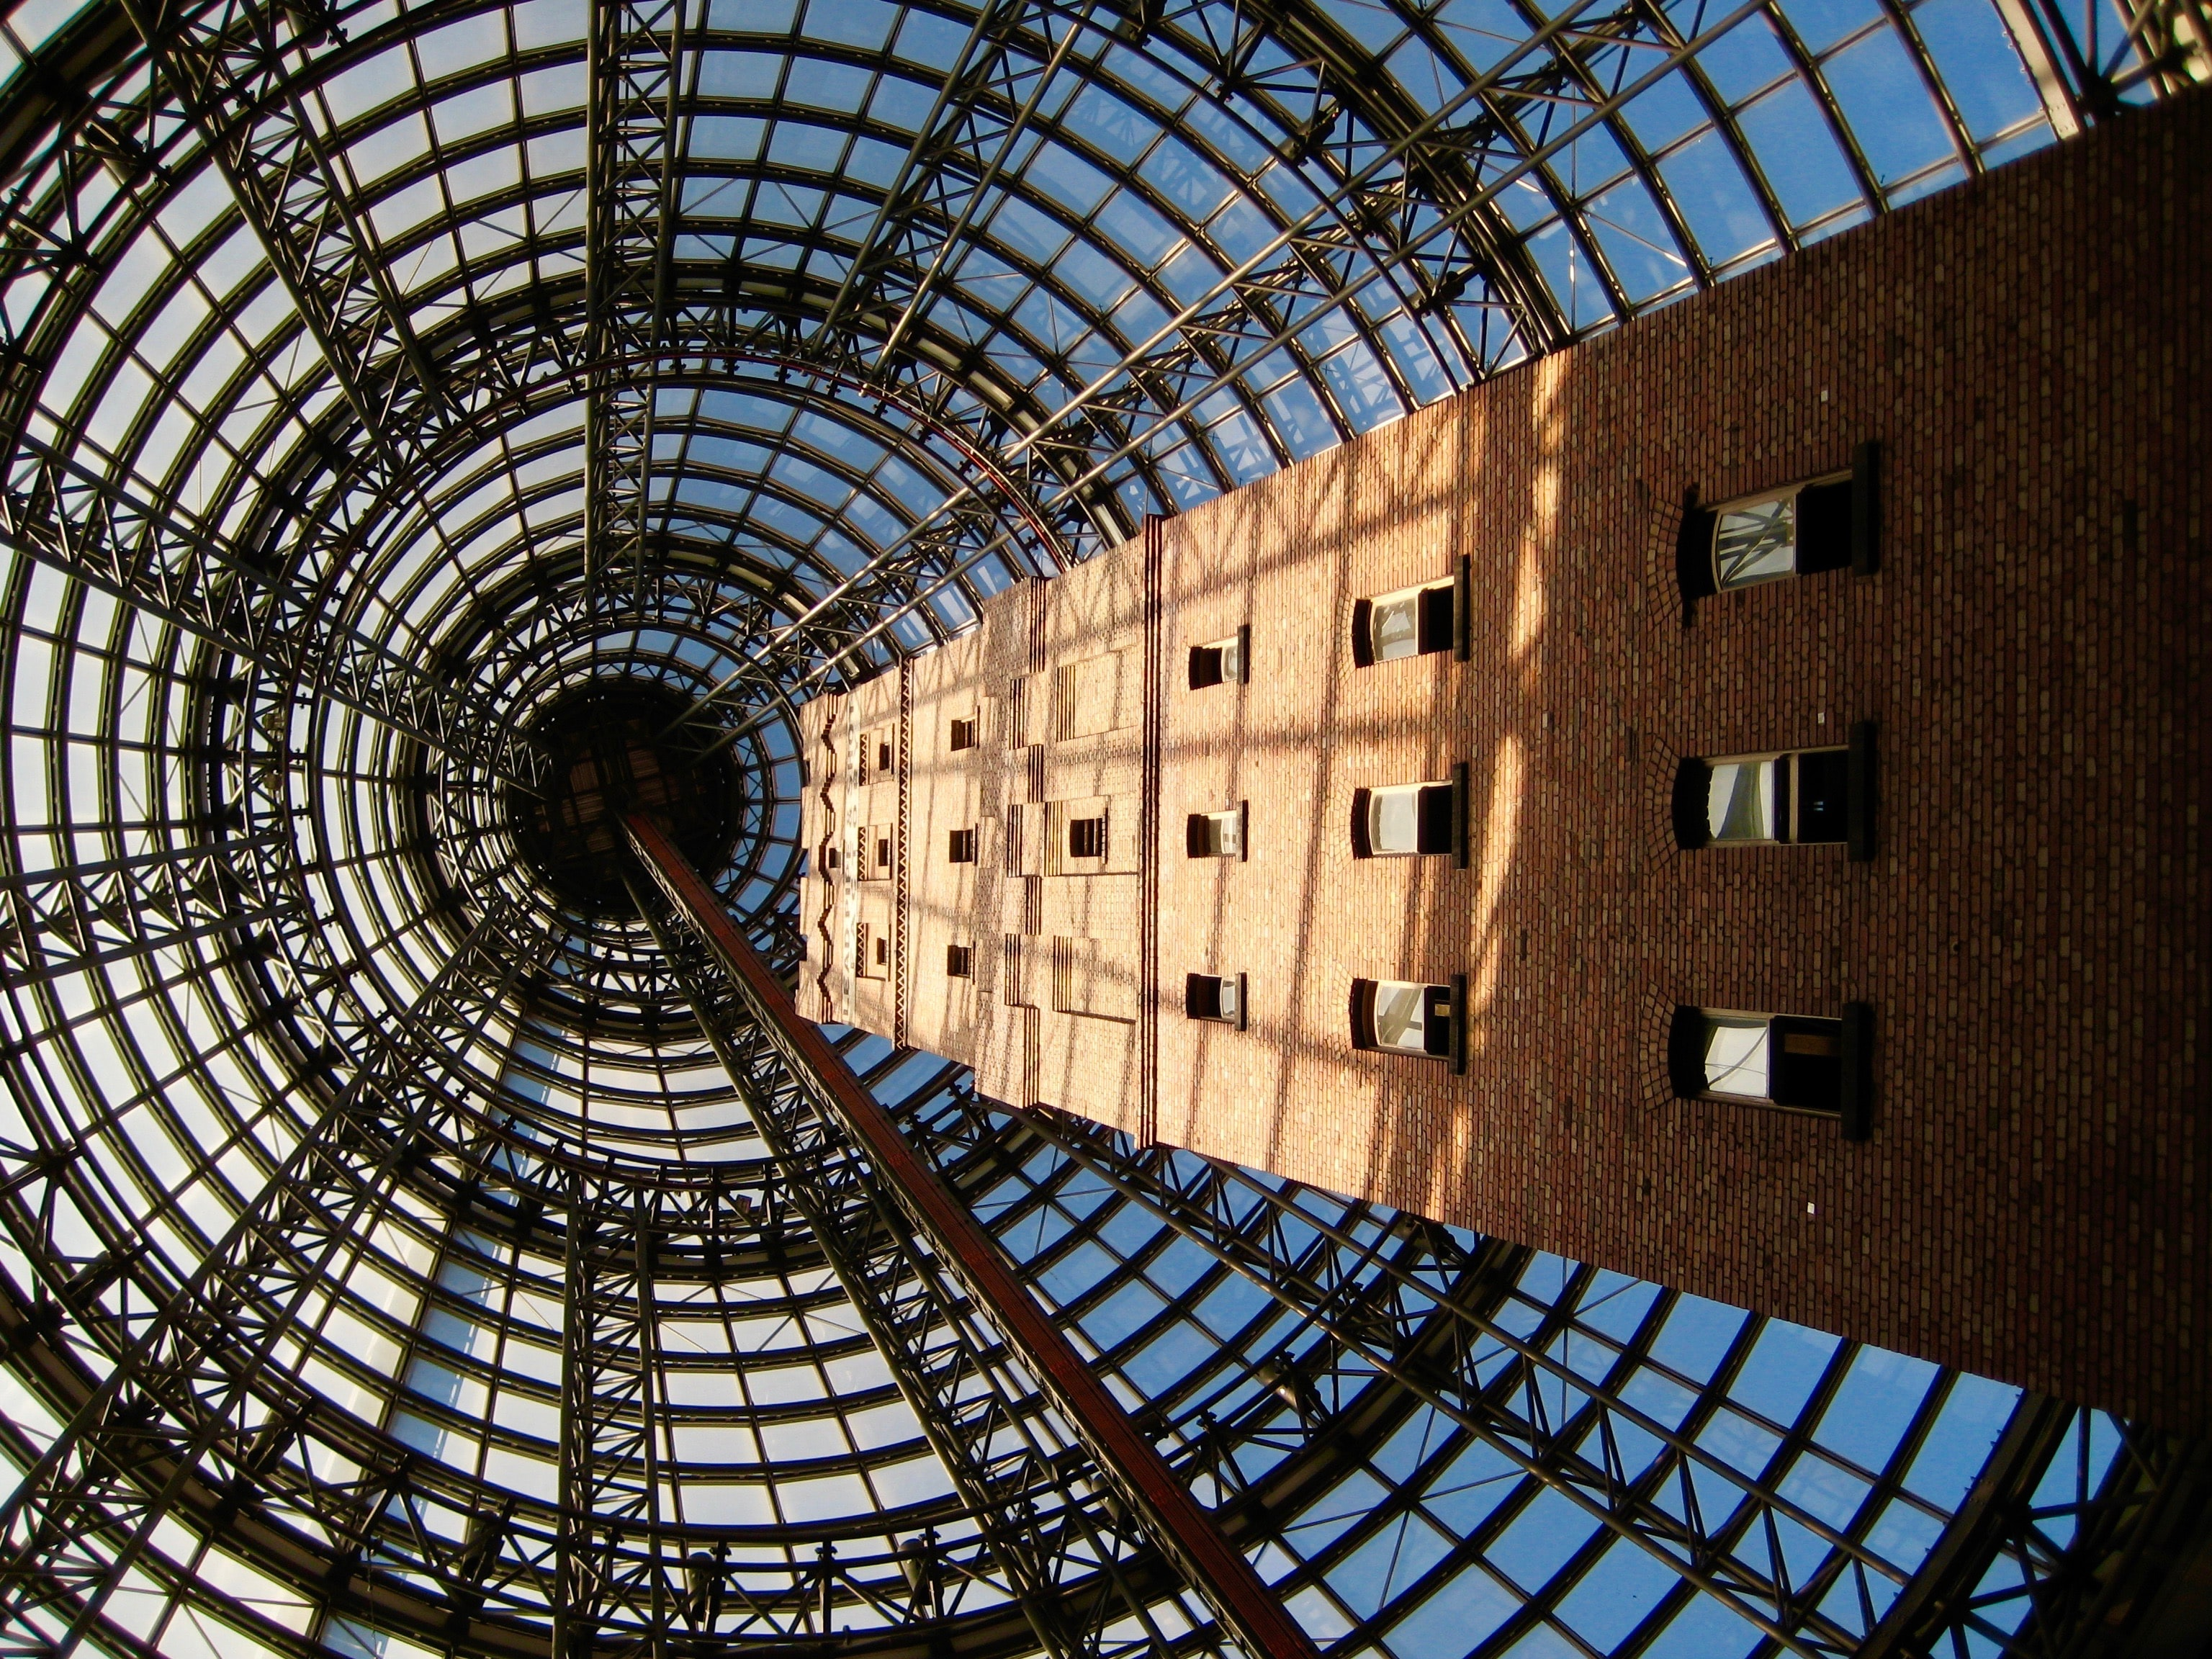 Upward perspective of a steel wire structure and building.